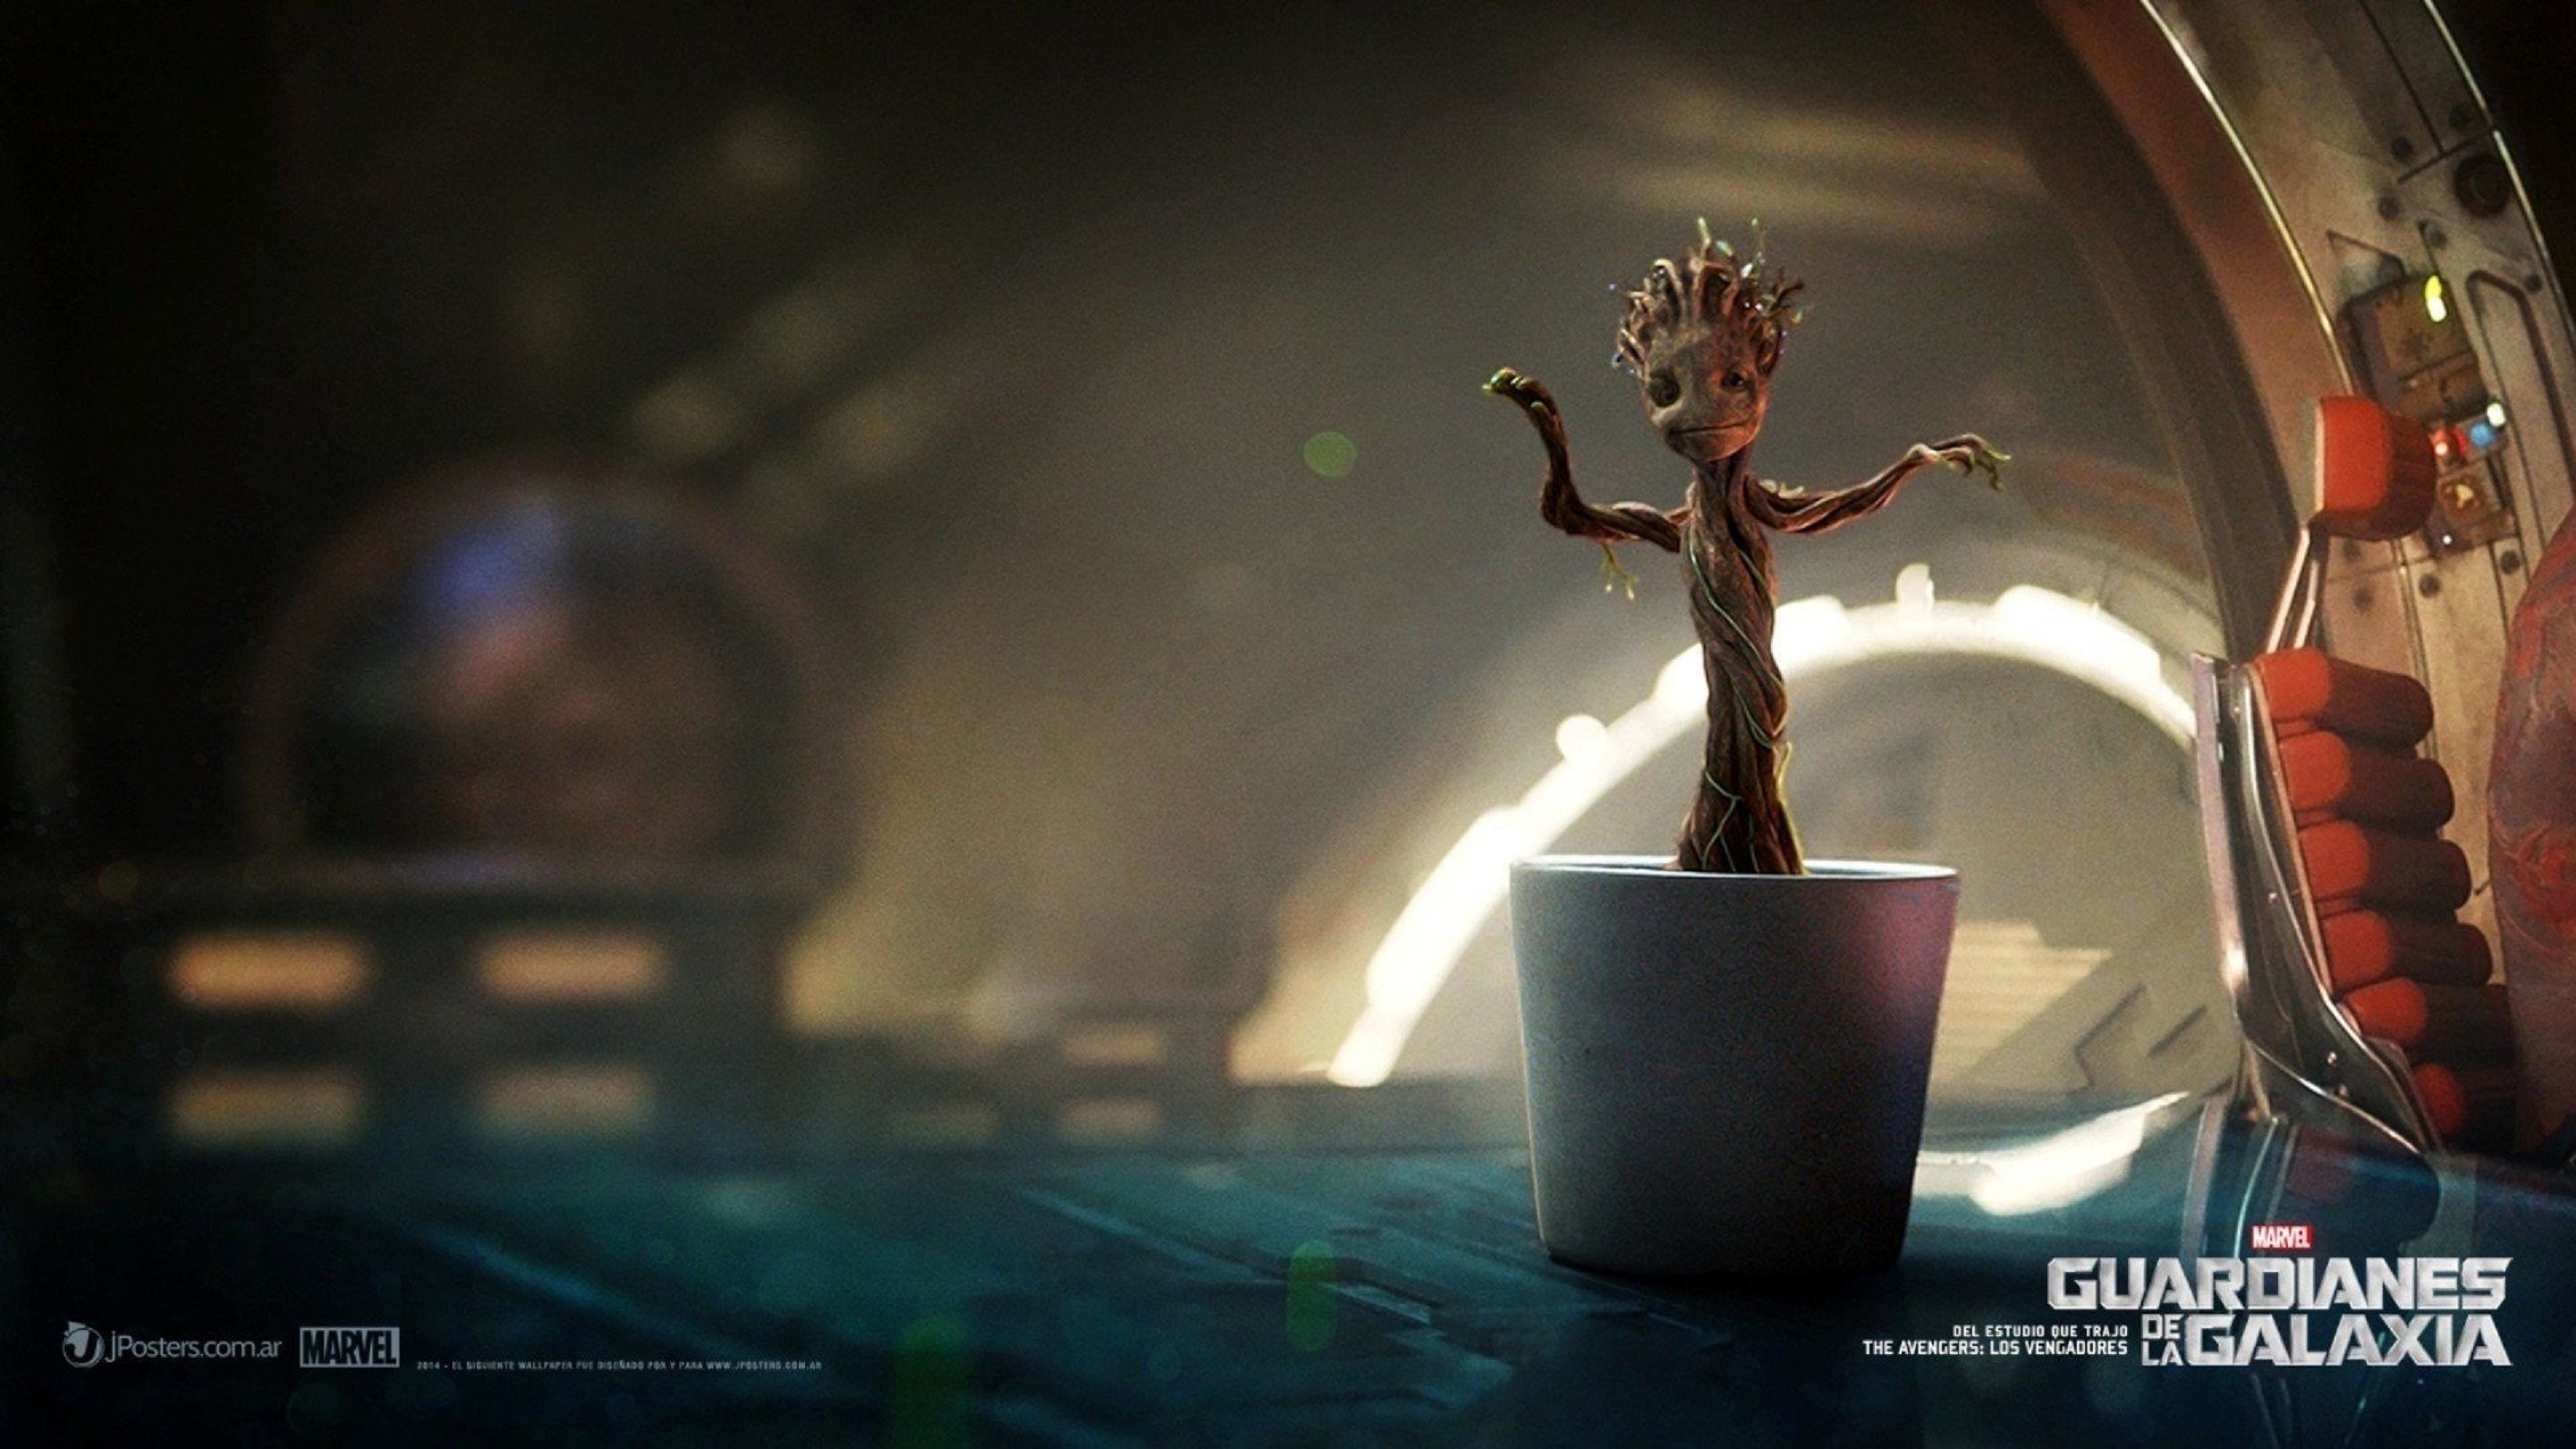 Guardians Of The Galaxy Baby Groot Wallpaper Baby Groot Pc Wallpaper 4k 2880x1620 Download Hd Wallpaper Wallpapertip